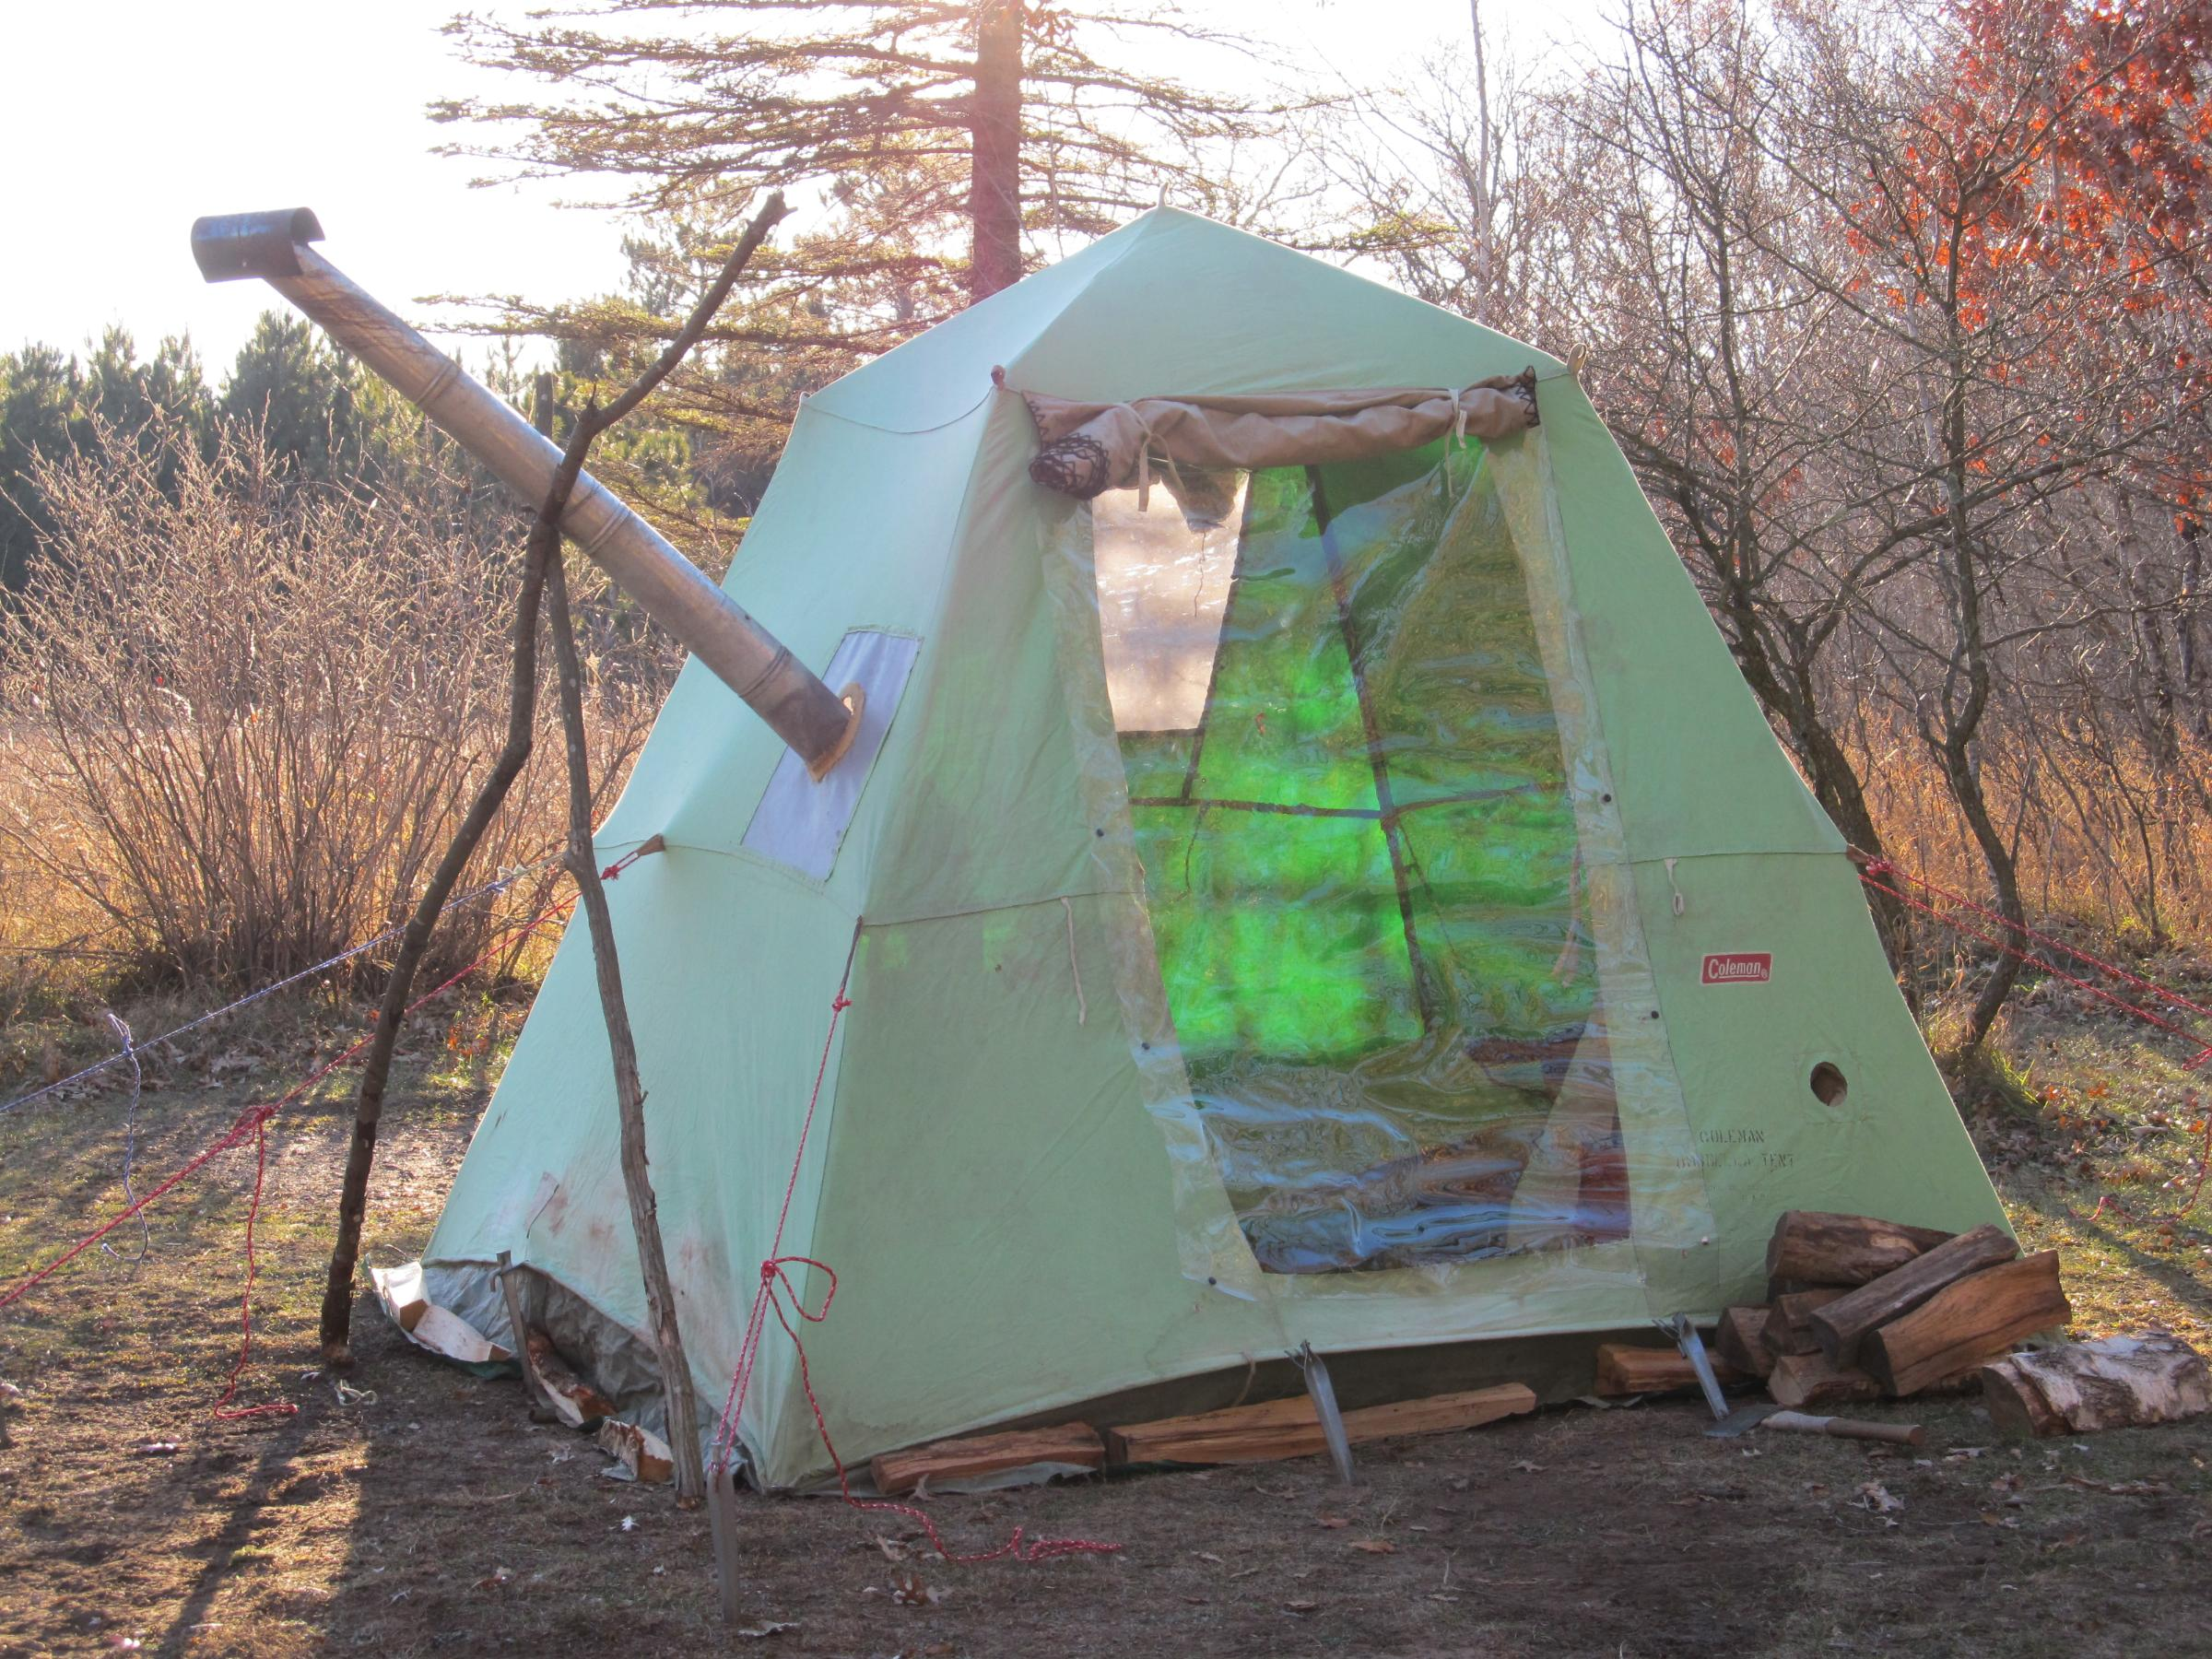 Diy Tent Bwca My Diy Solo Winter Tent Boundary Waters Winter Camping And